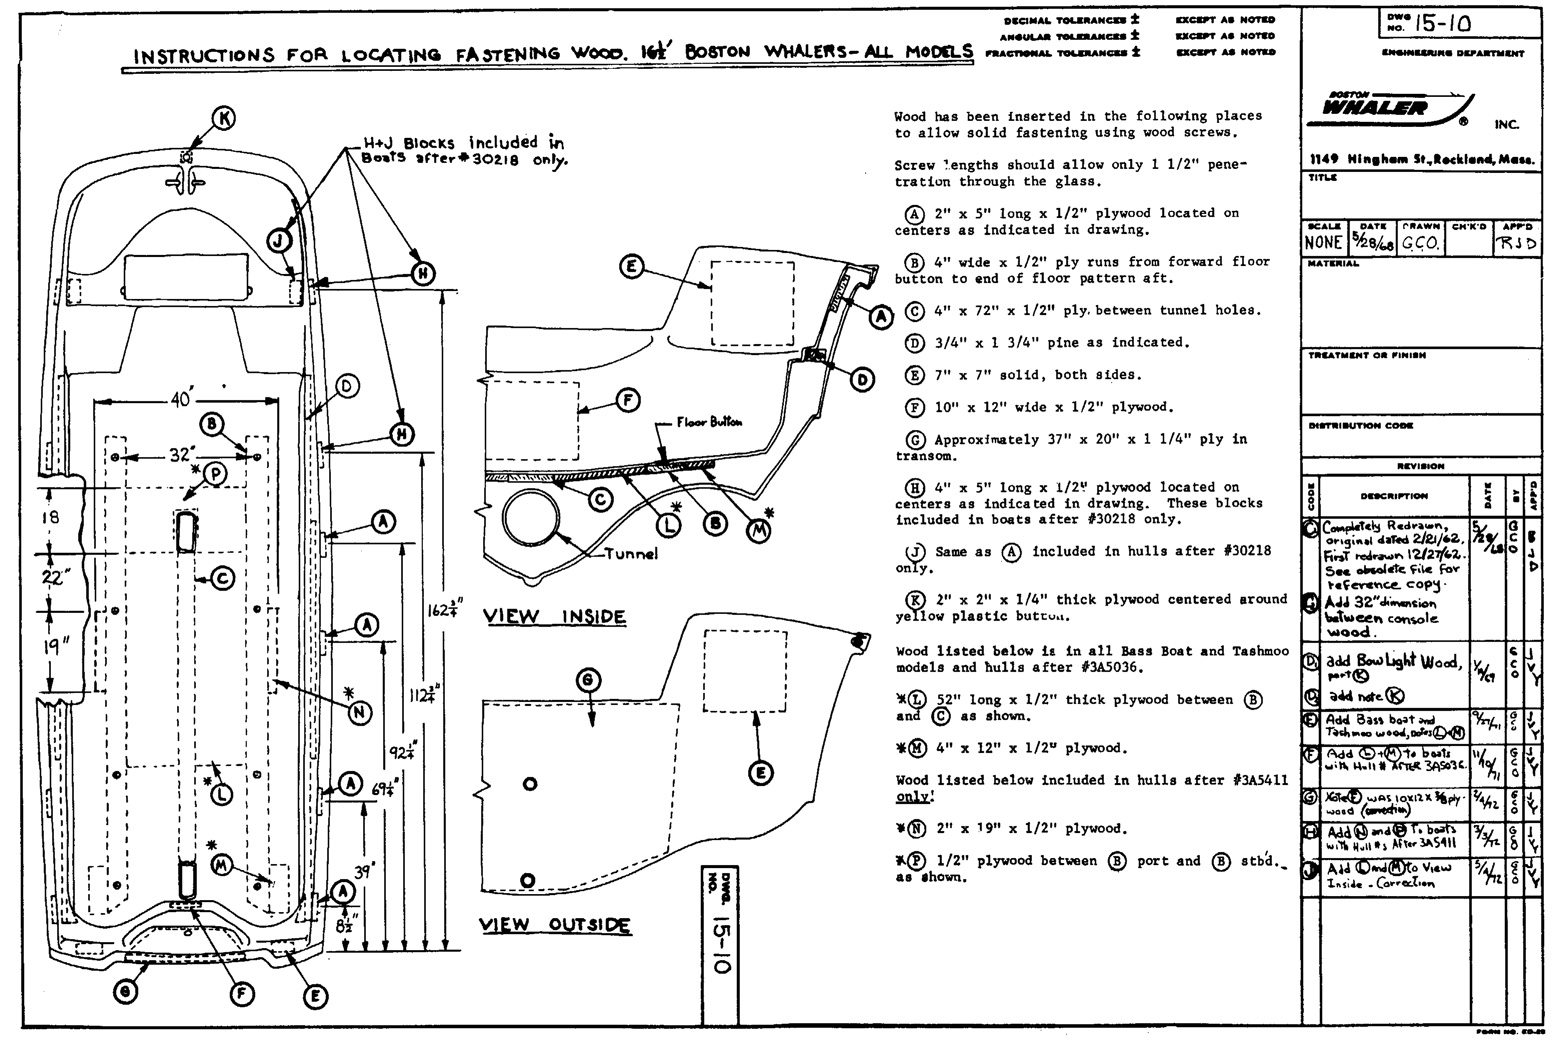 16WoodDWG15 10 classic whaler boston whaler reference available drawings boston whaler wiring harness at bakdesigns.co